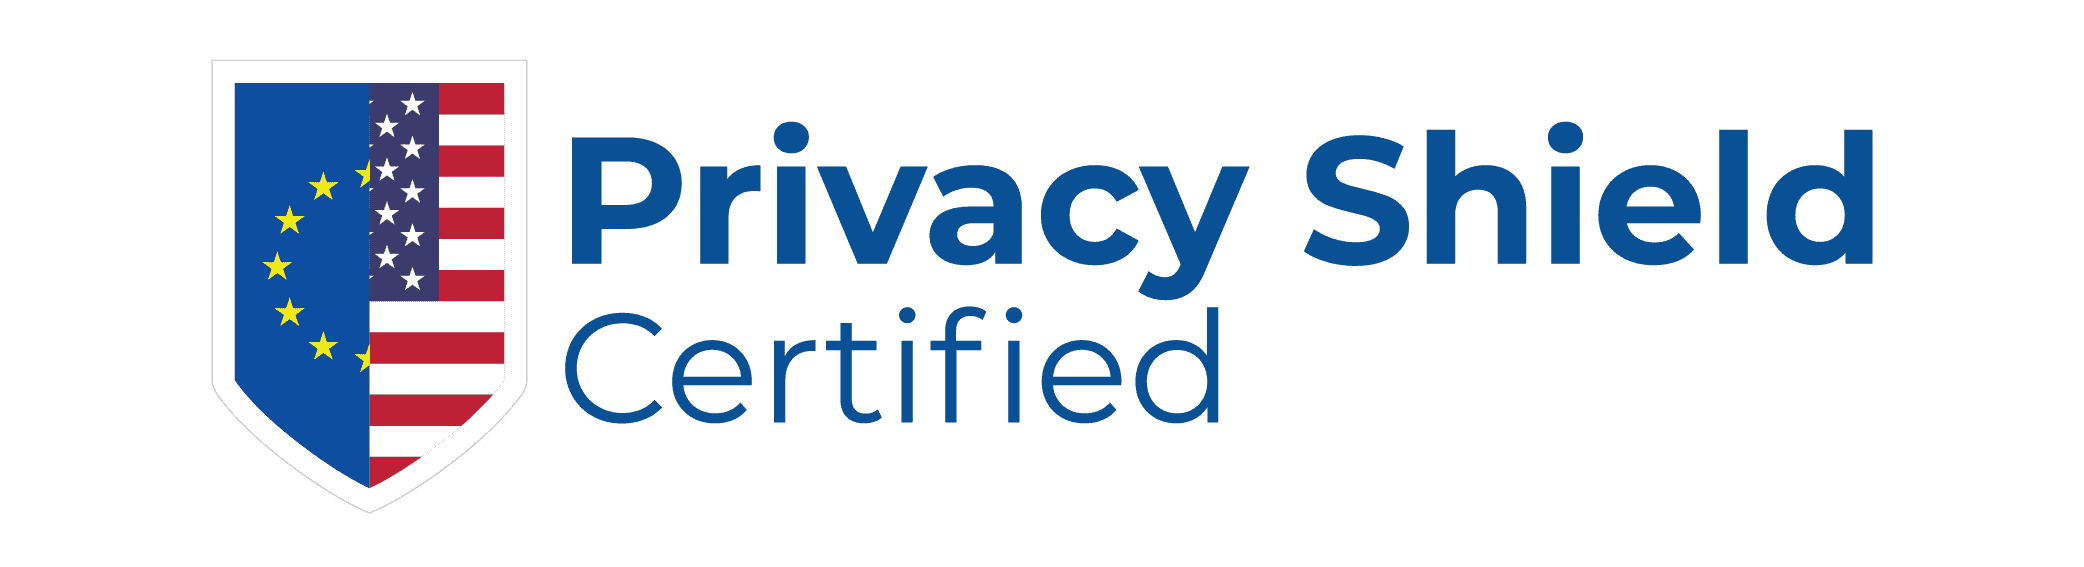 privacy-cert-shield-e1599602106710.png